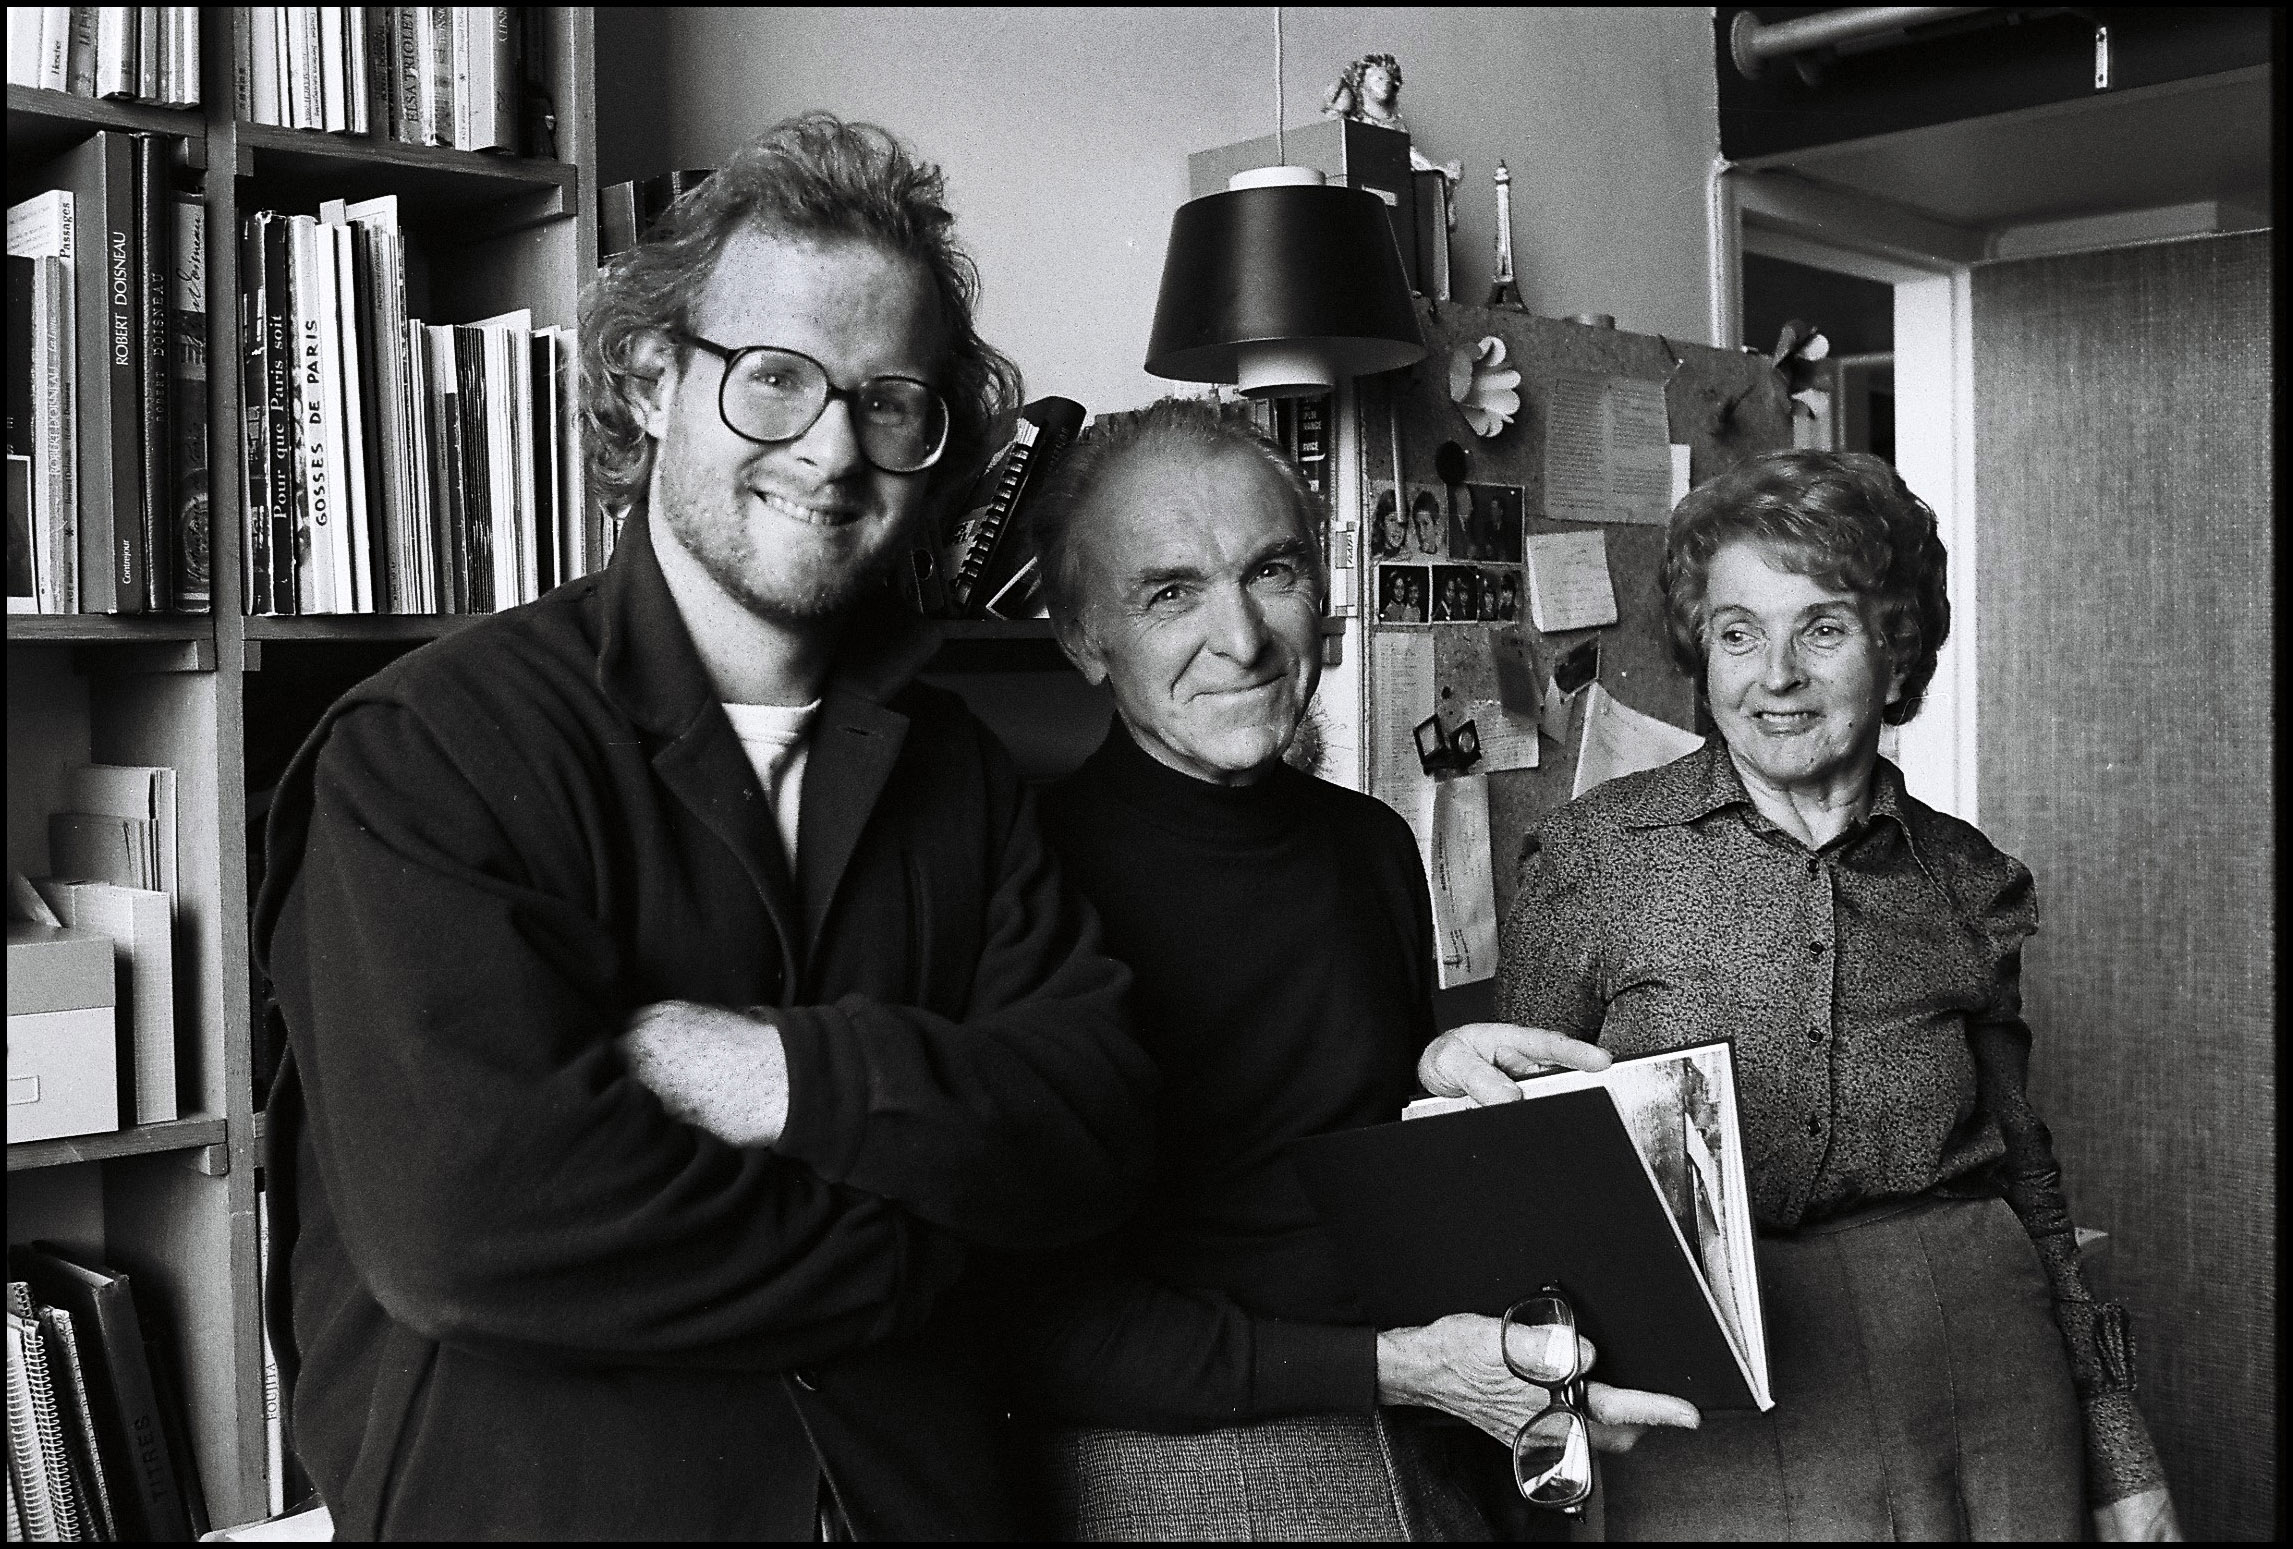 Peter Turnley with Robert Doisneau, and his wife, Paris, 1981